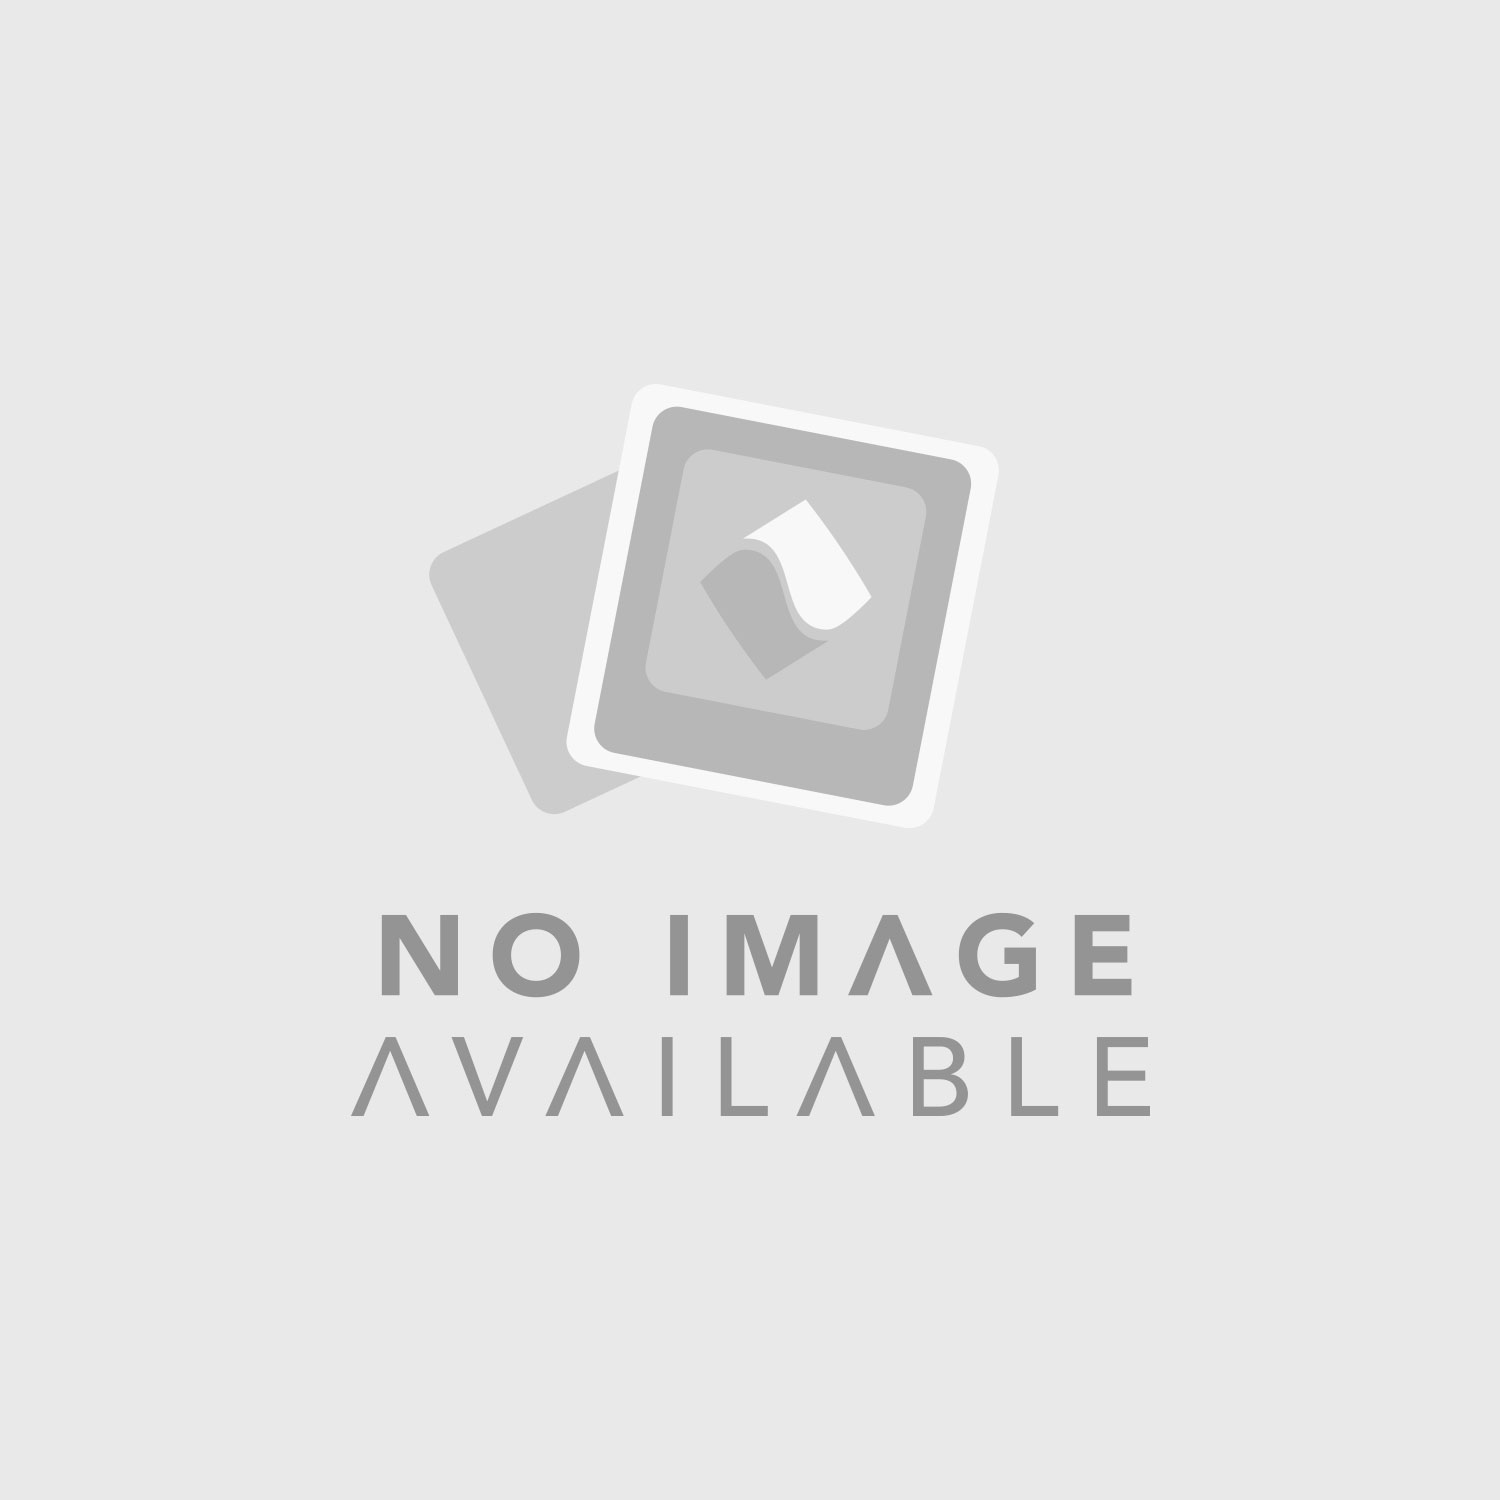 Froggys Fog Extra Dry Snow Juice (1 Gallon)